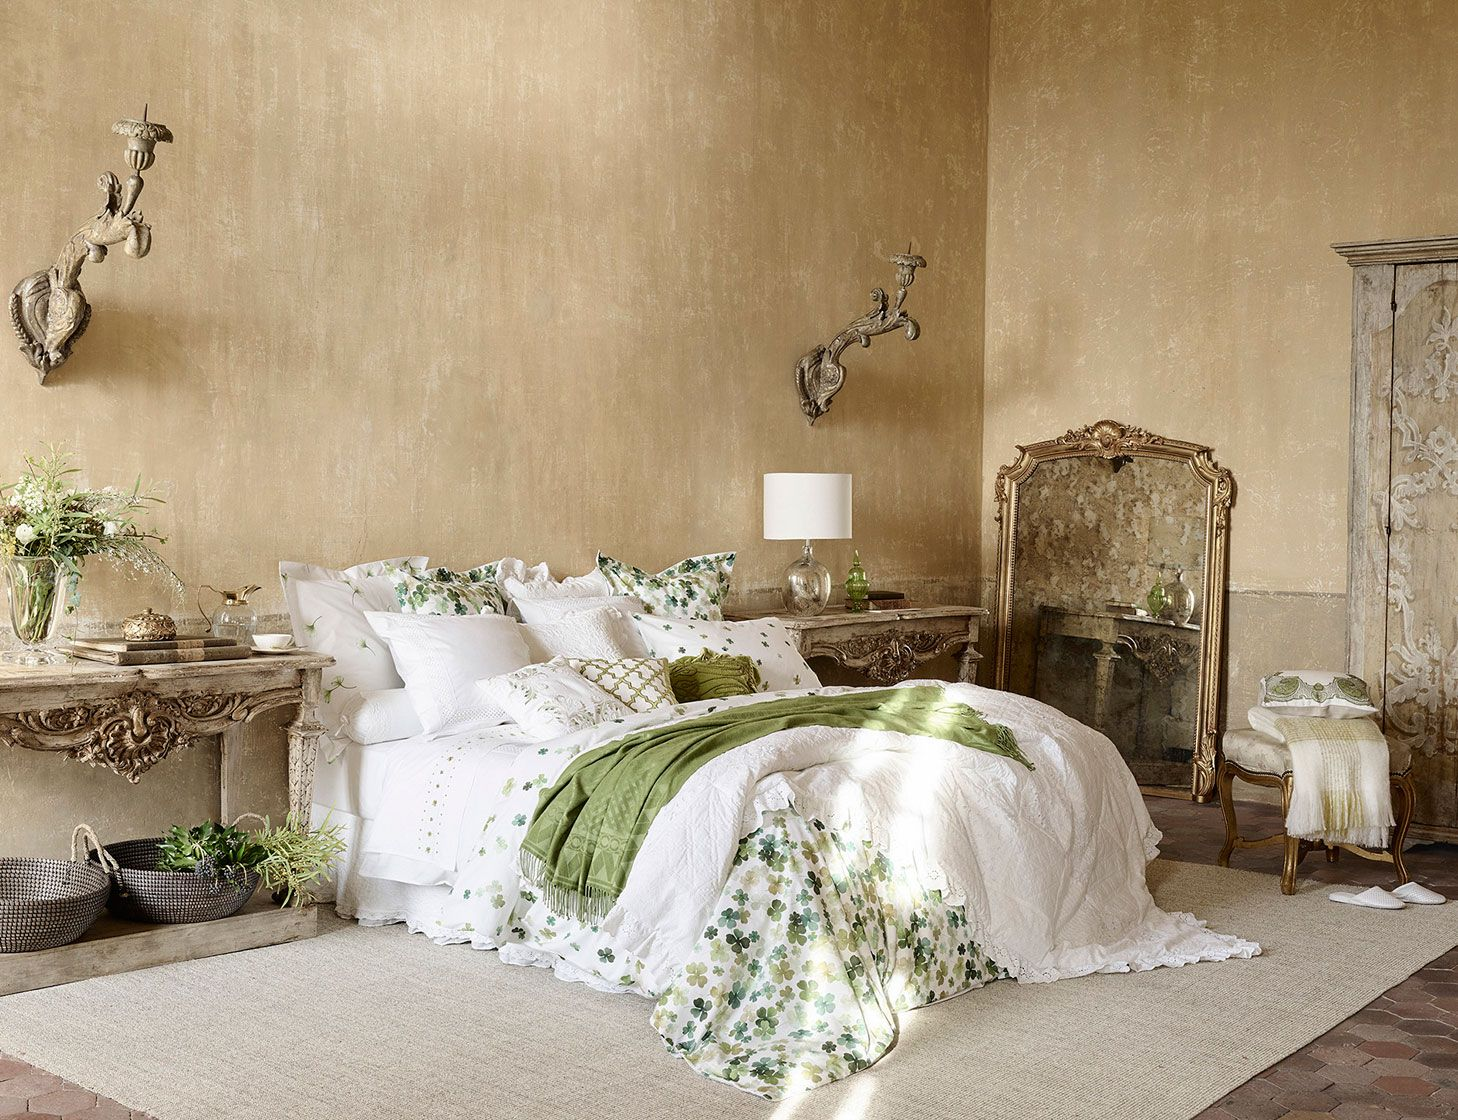 versailles edit 1 campaign ss16 zara home deutschland interior inspiration pinterest. Black Bedroom Furniture Sets. Home Design Ideas